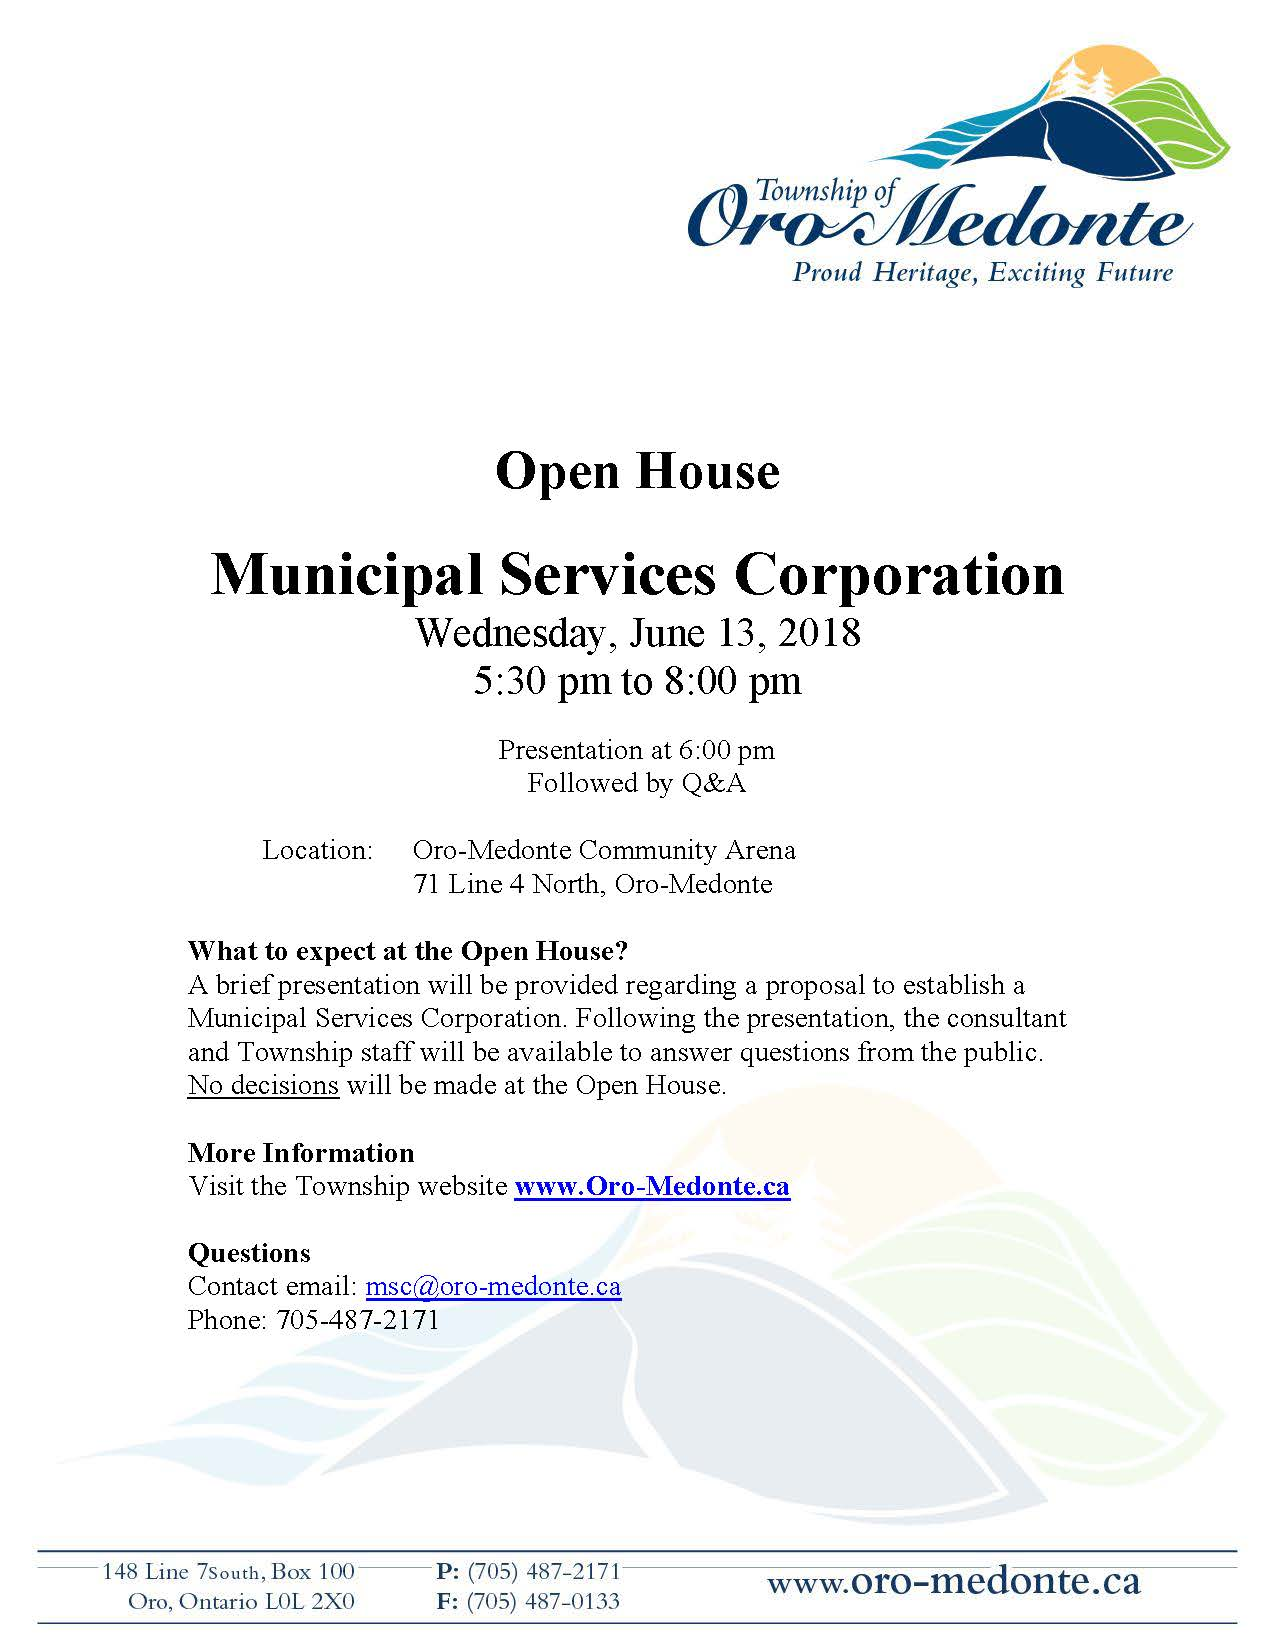 Open House Notice